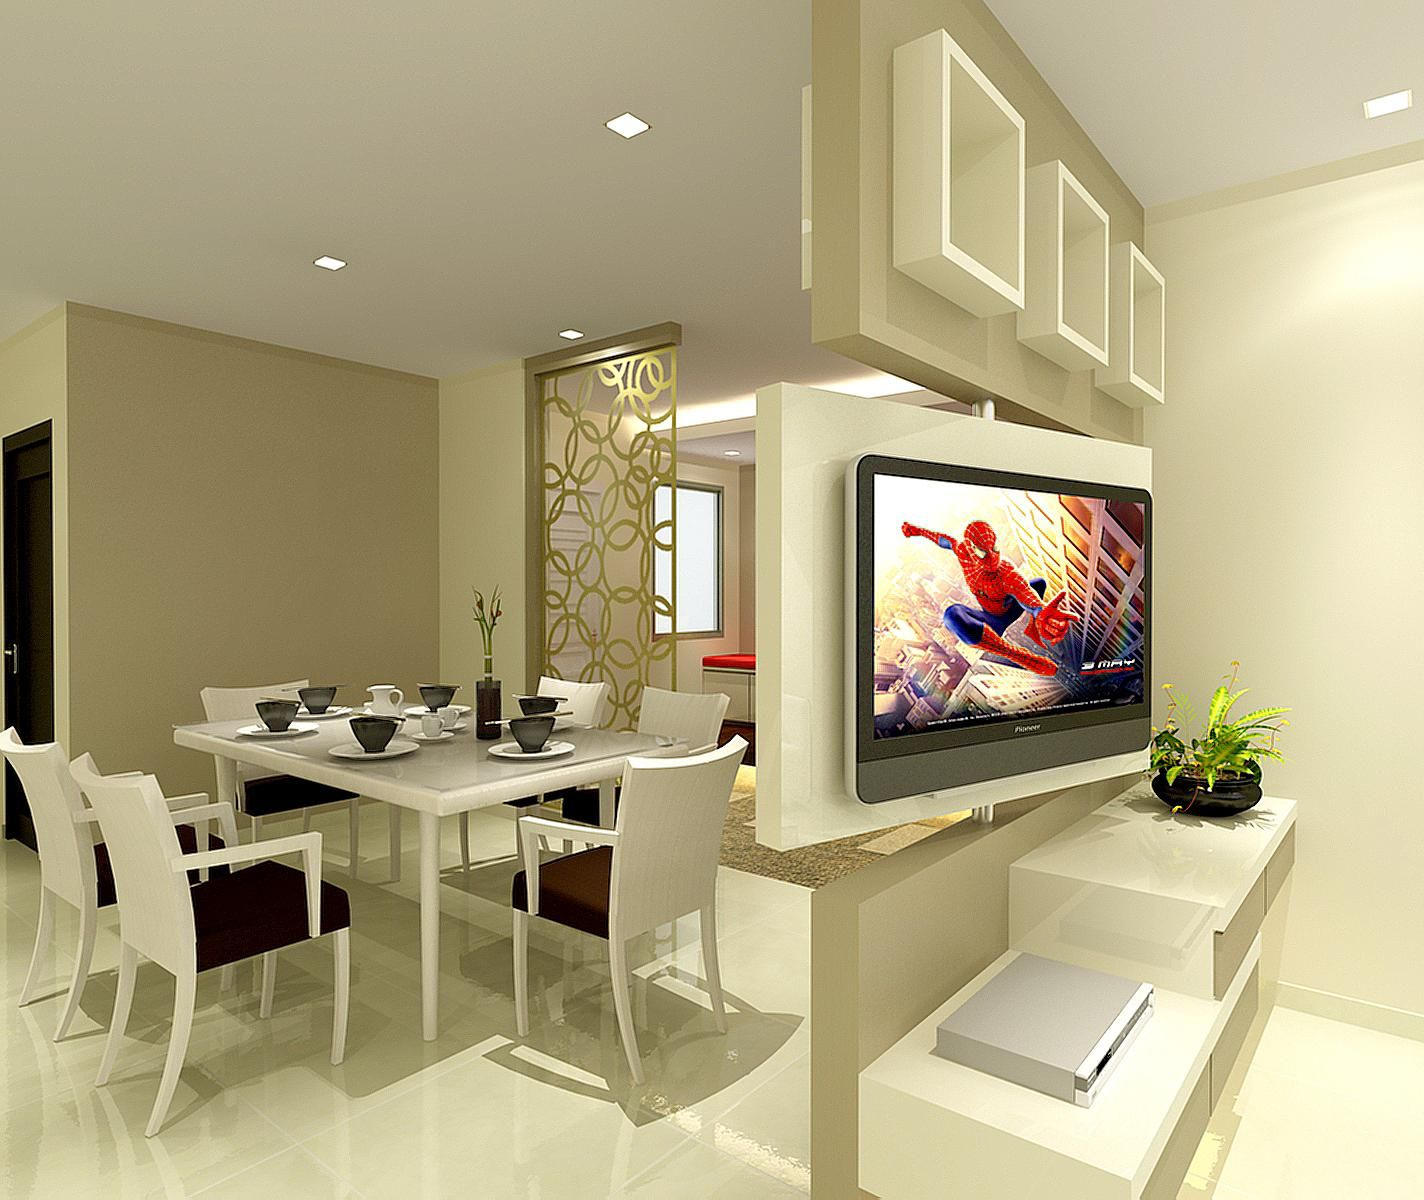 Livingdining degrees rotatable tv feature wall that allows the